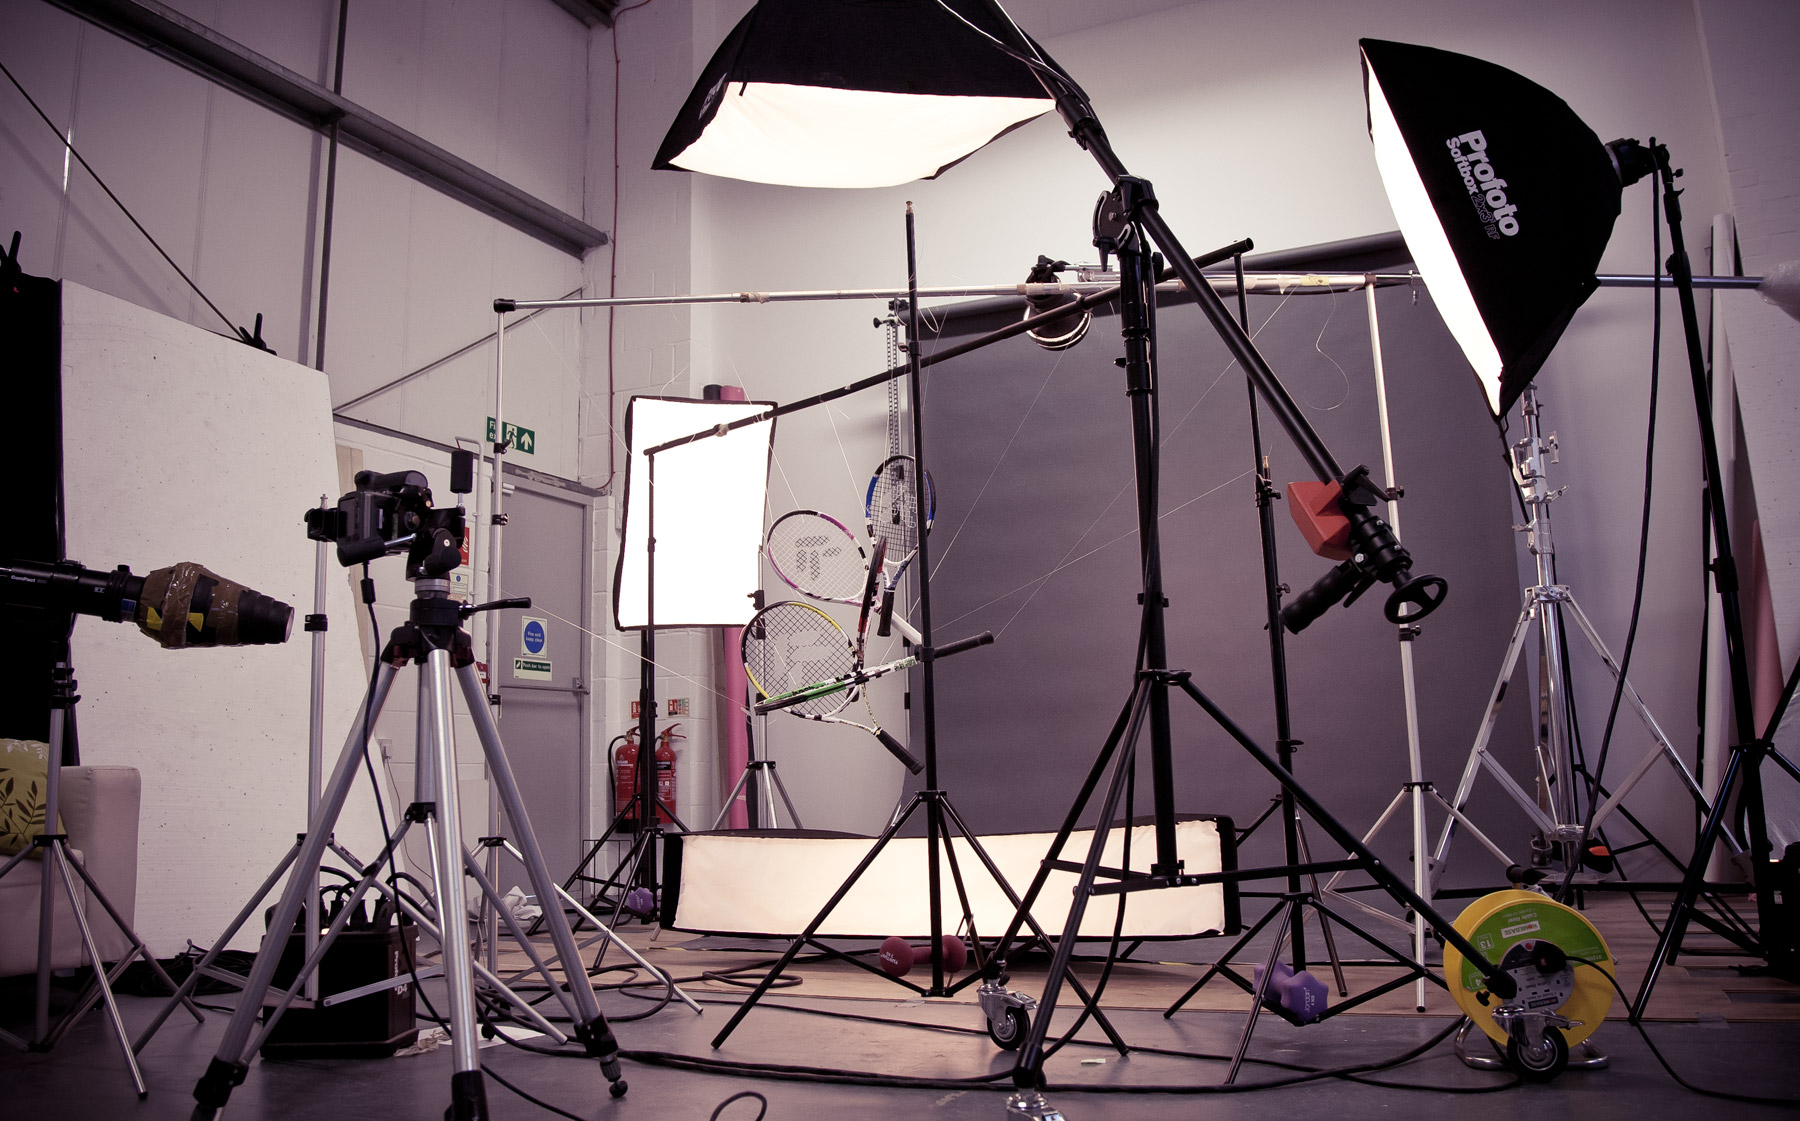 Behind the scenes showing the lighting setup for our tennis racket shoot